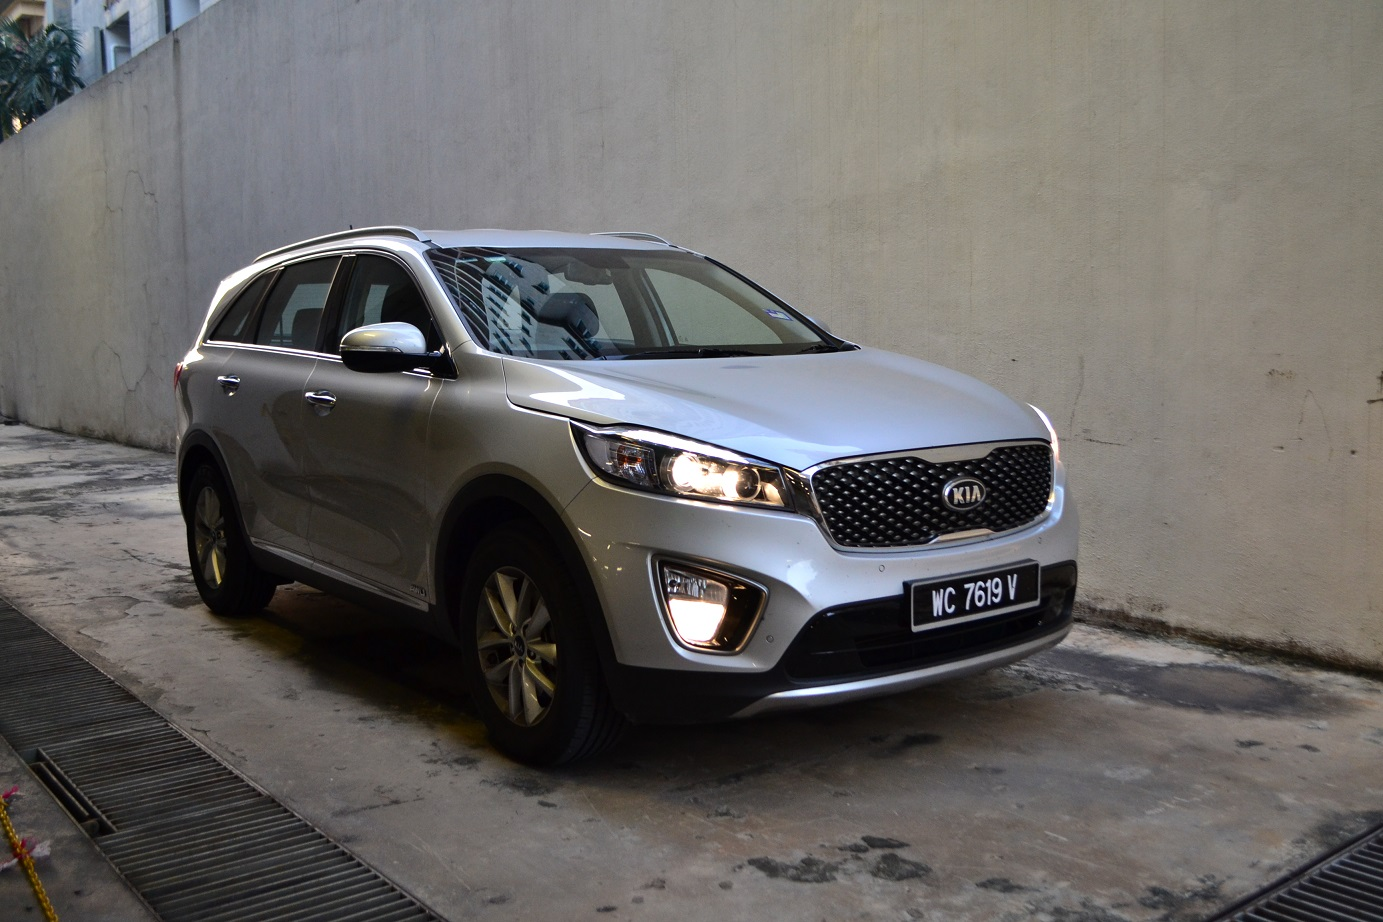 hight resolution of without looking at the badge you might not be able to tell it s a sorento compared to the second generation picture above the third gen sorento has a